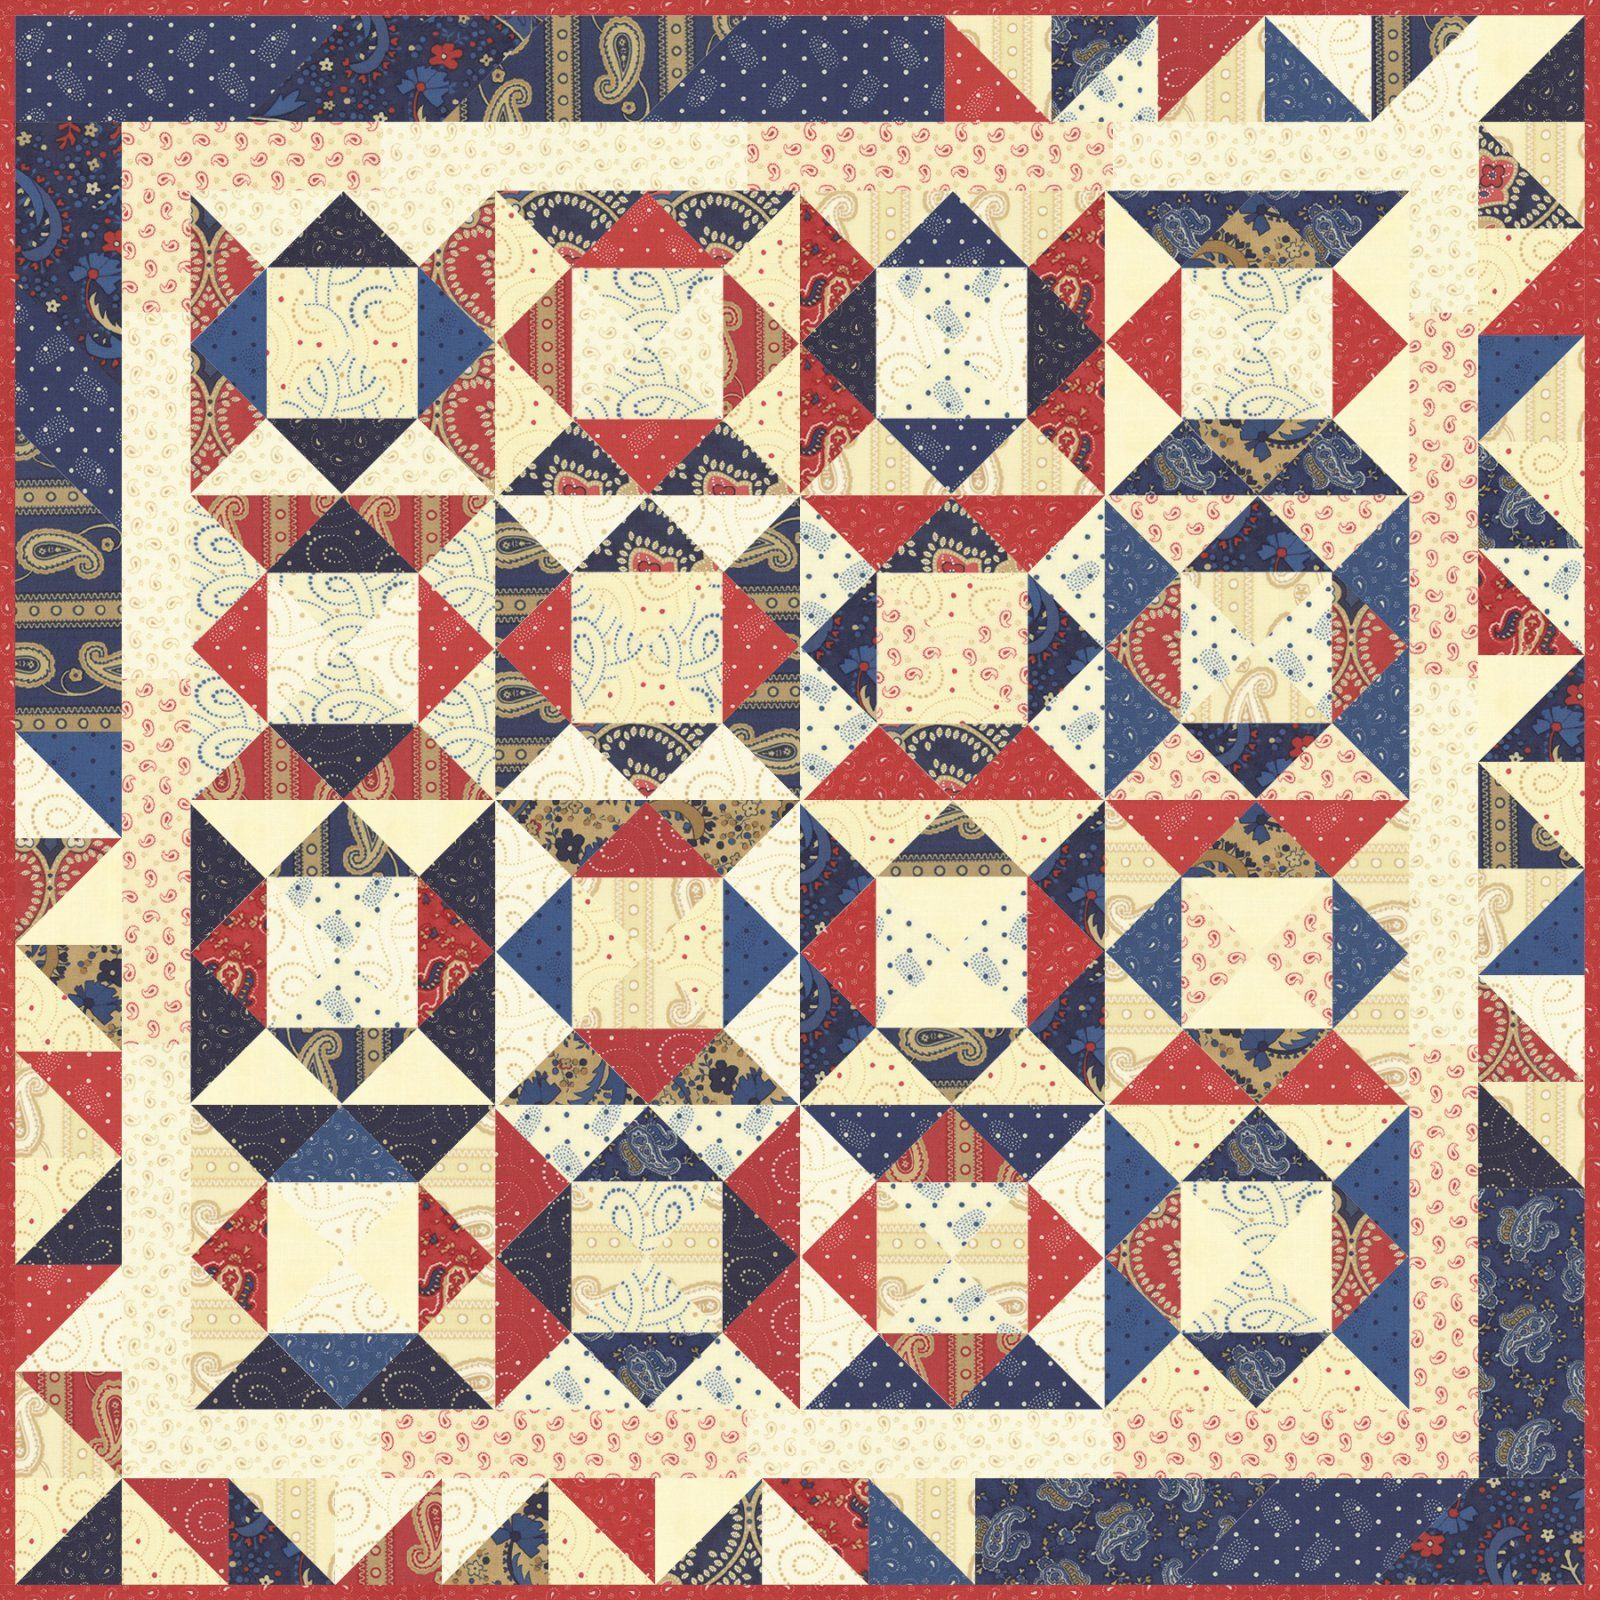 kit look at quilt kits online back quilting a article reproduction quilts